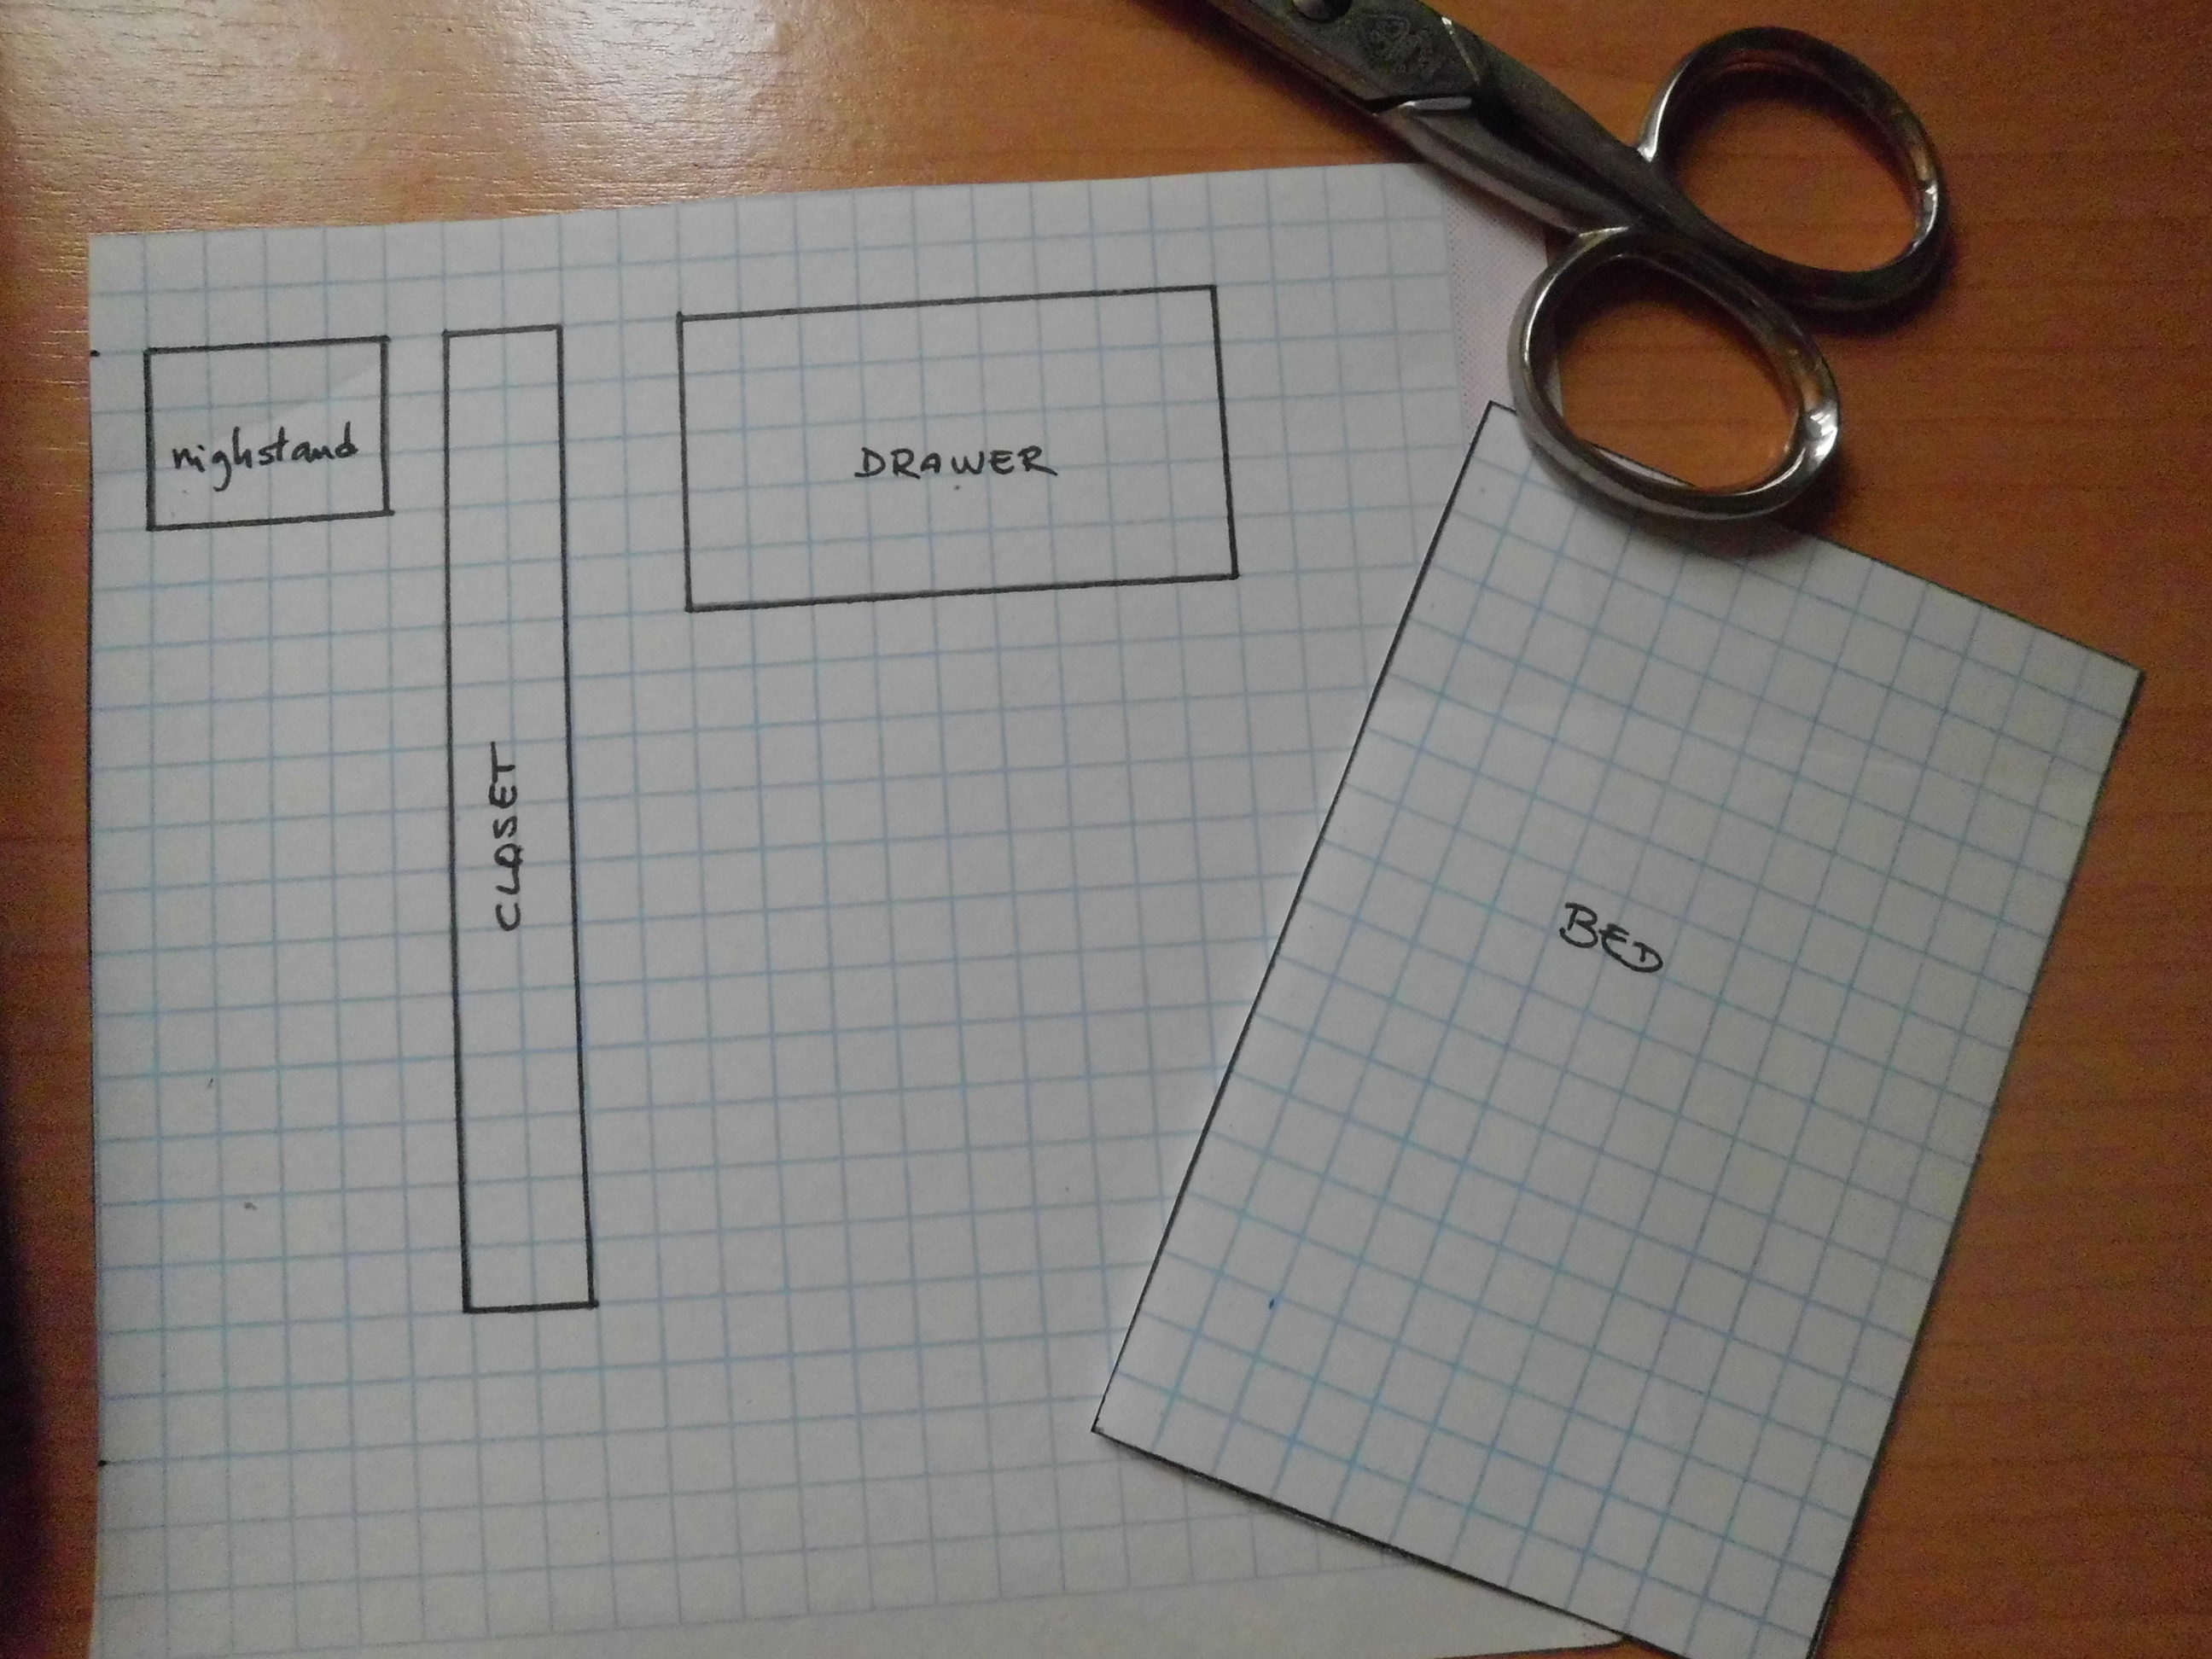 My Diy Weekend Project 7 How To Draw A Floor Plan The Happiest Pixel Actually Prefer Get Several Copies Of And Each Once You Have Them Its Like Game Can Try Every Furniture Combination Want On Map Until One That Fits Best Your Space